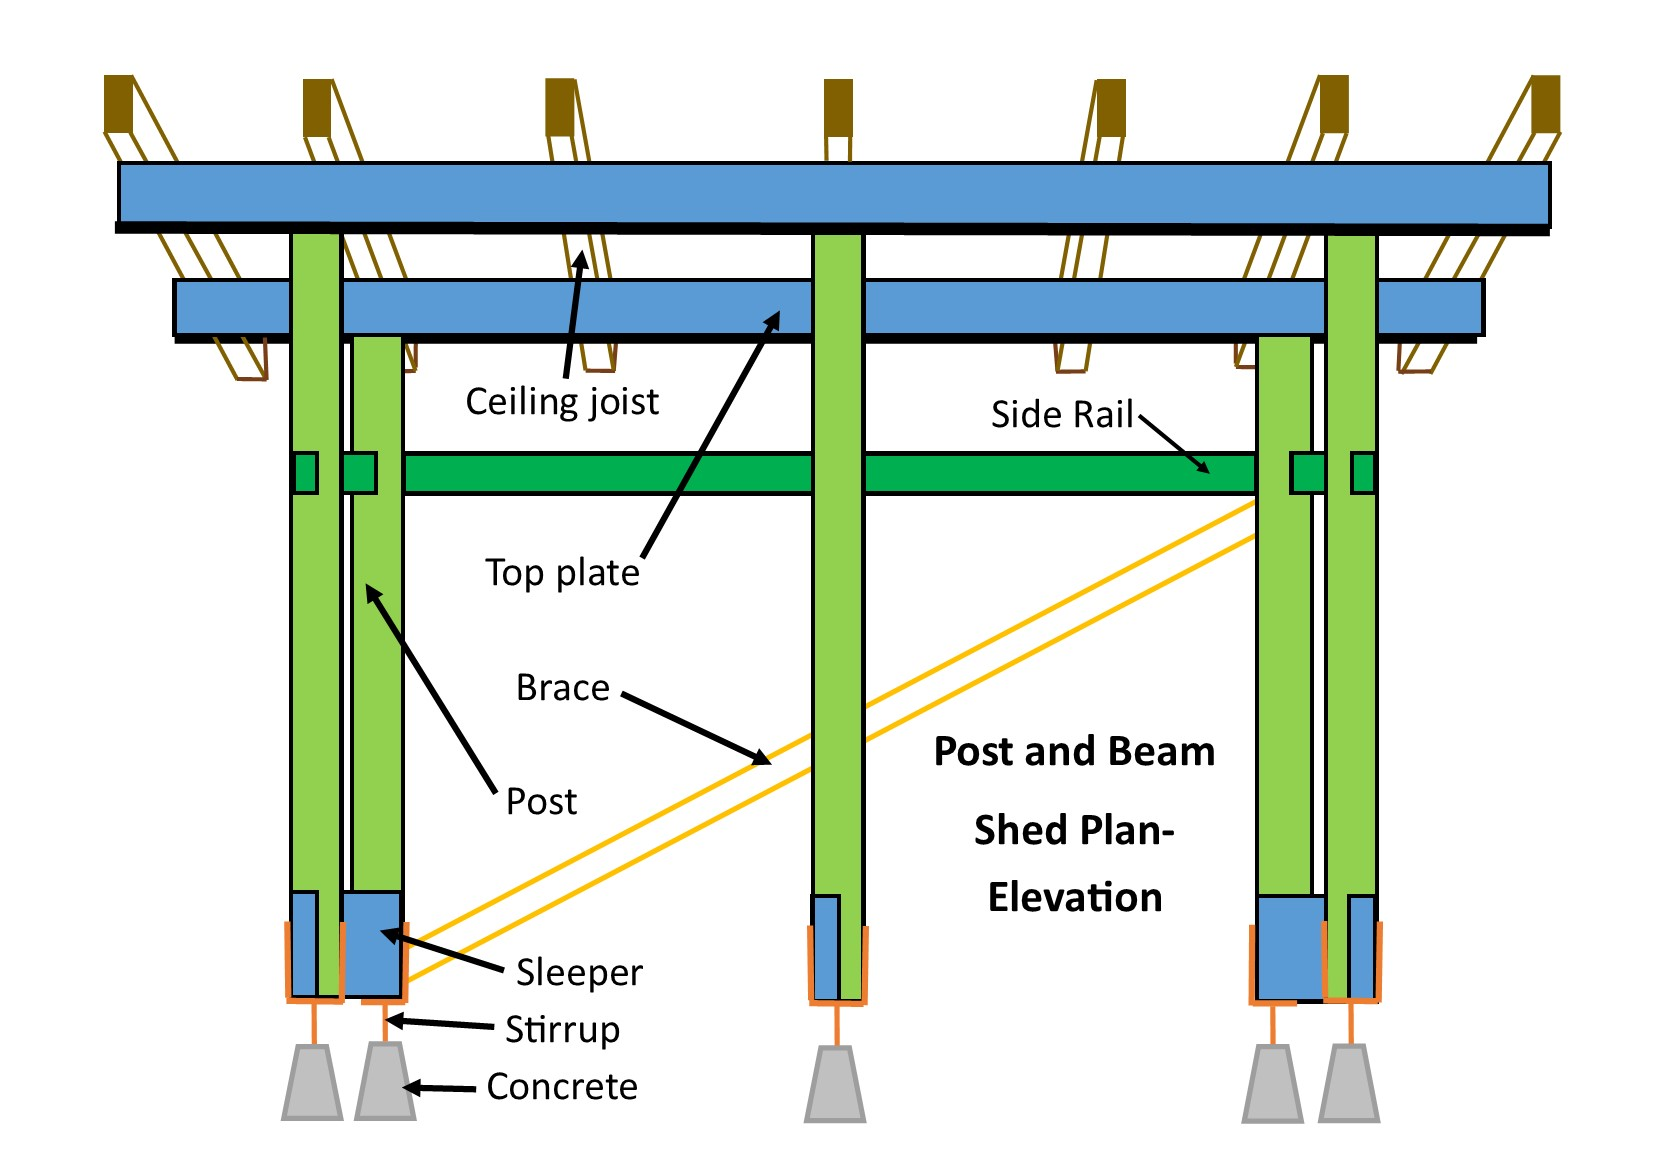 Roof Bearer Diagram Of Part Of A Roof Frame Showing A